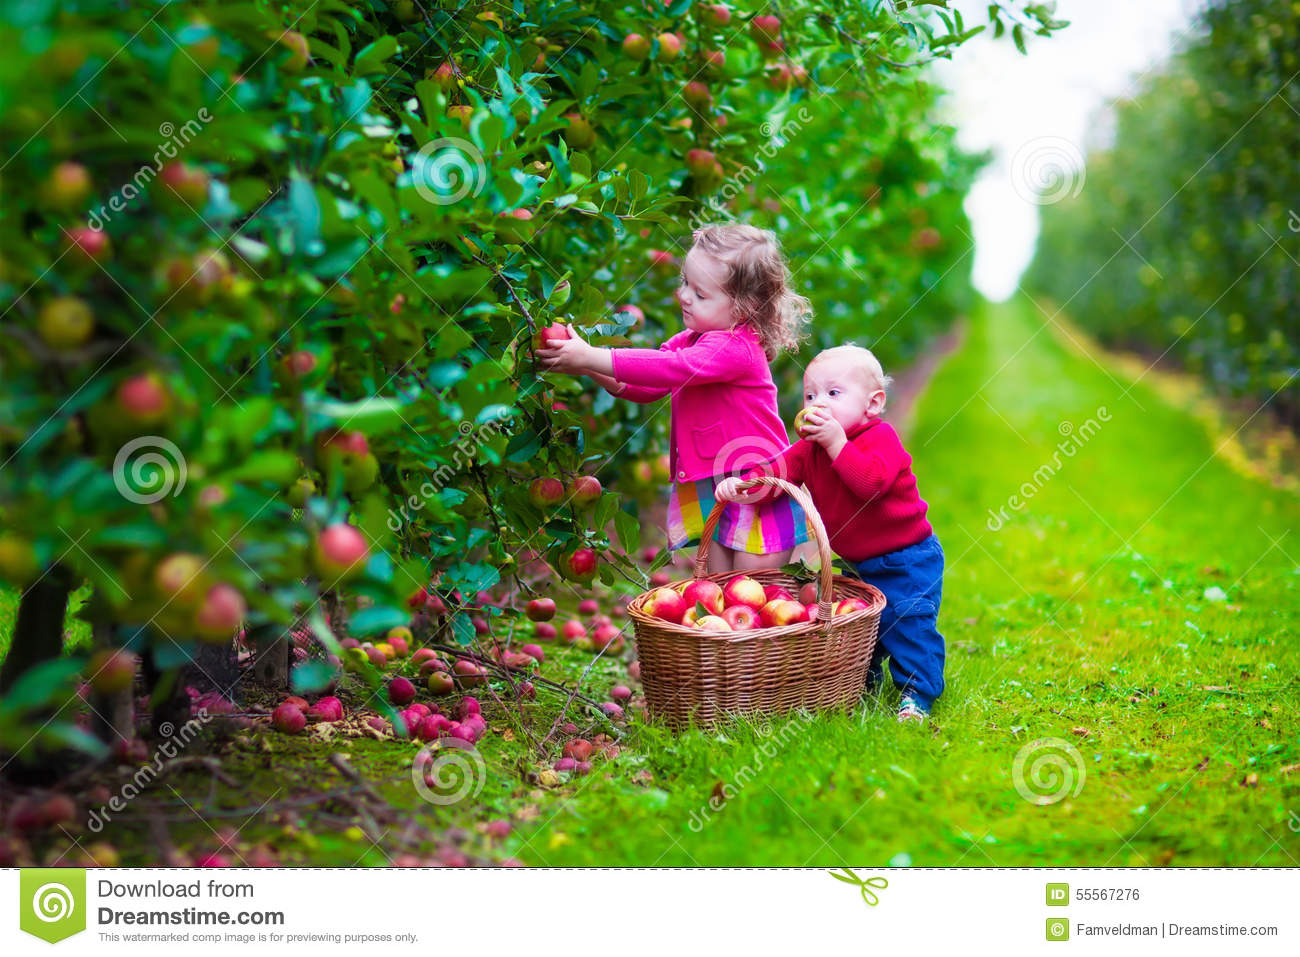 Child picking apples on a farm in autumn little girl and boy play in